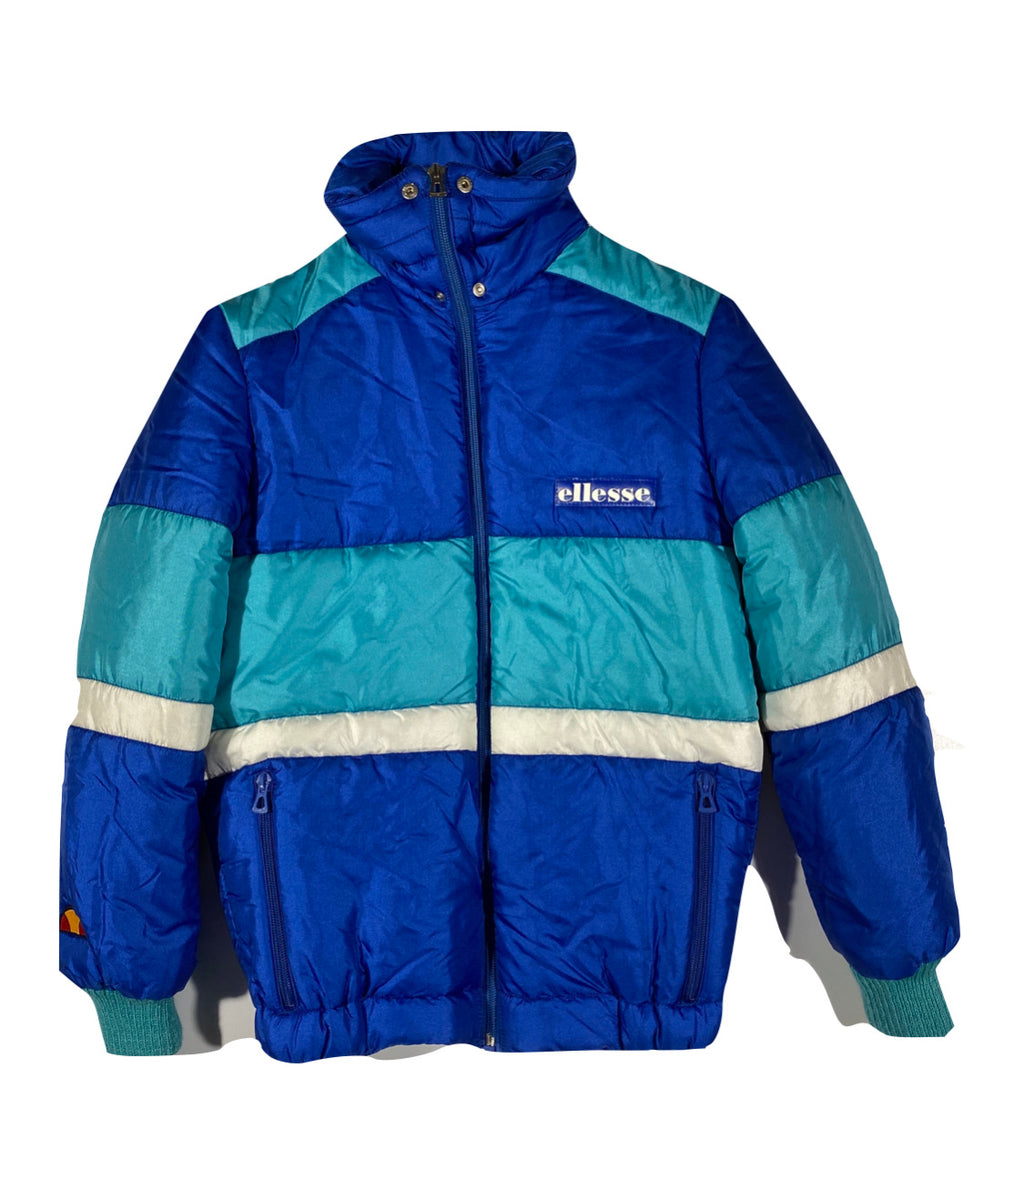 Ellesse jacket. Made in italy. Small